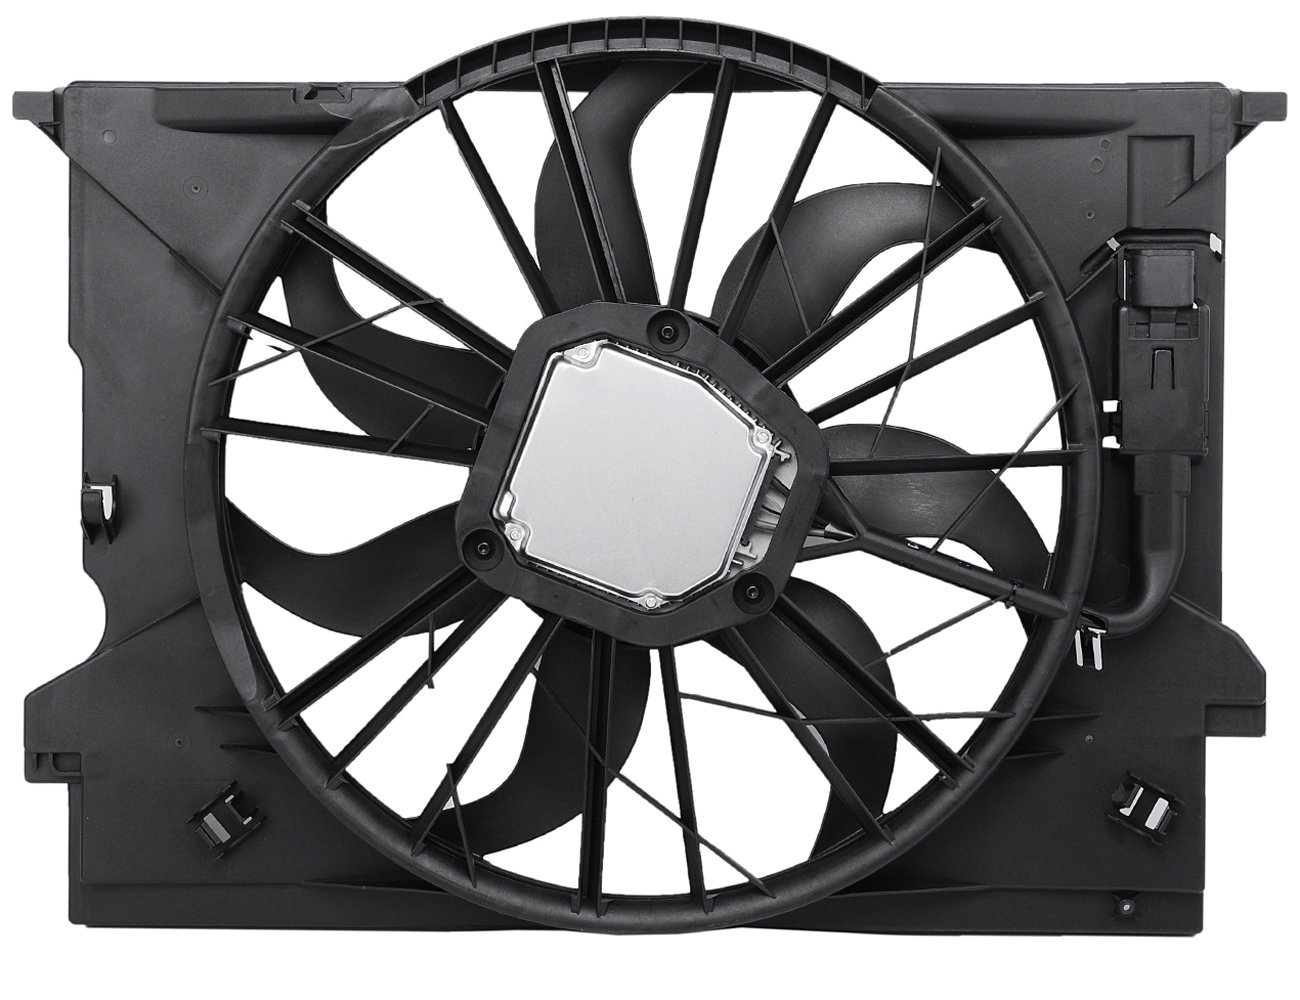 TOPAZ 2115001693 Radiator Cooling Fan Assembly for Mercedes W211